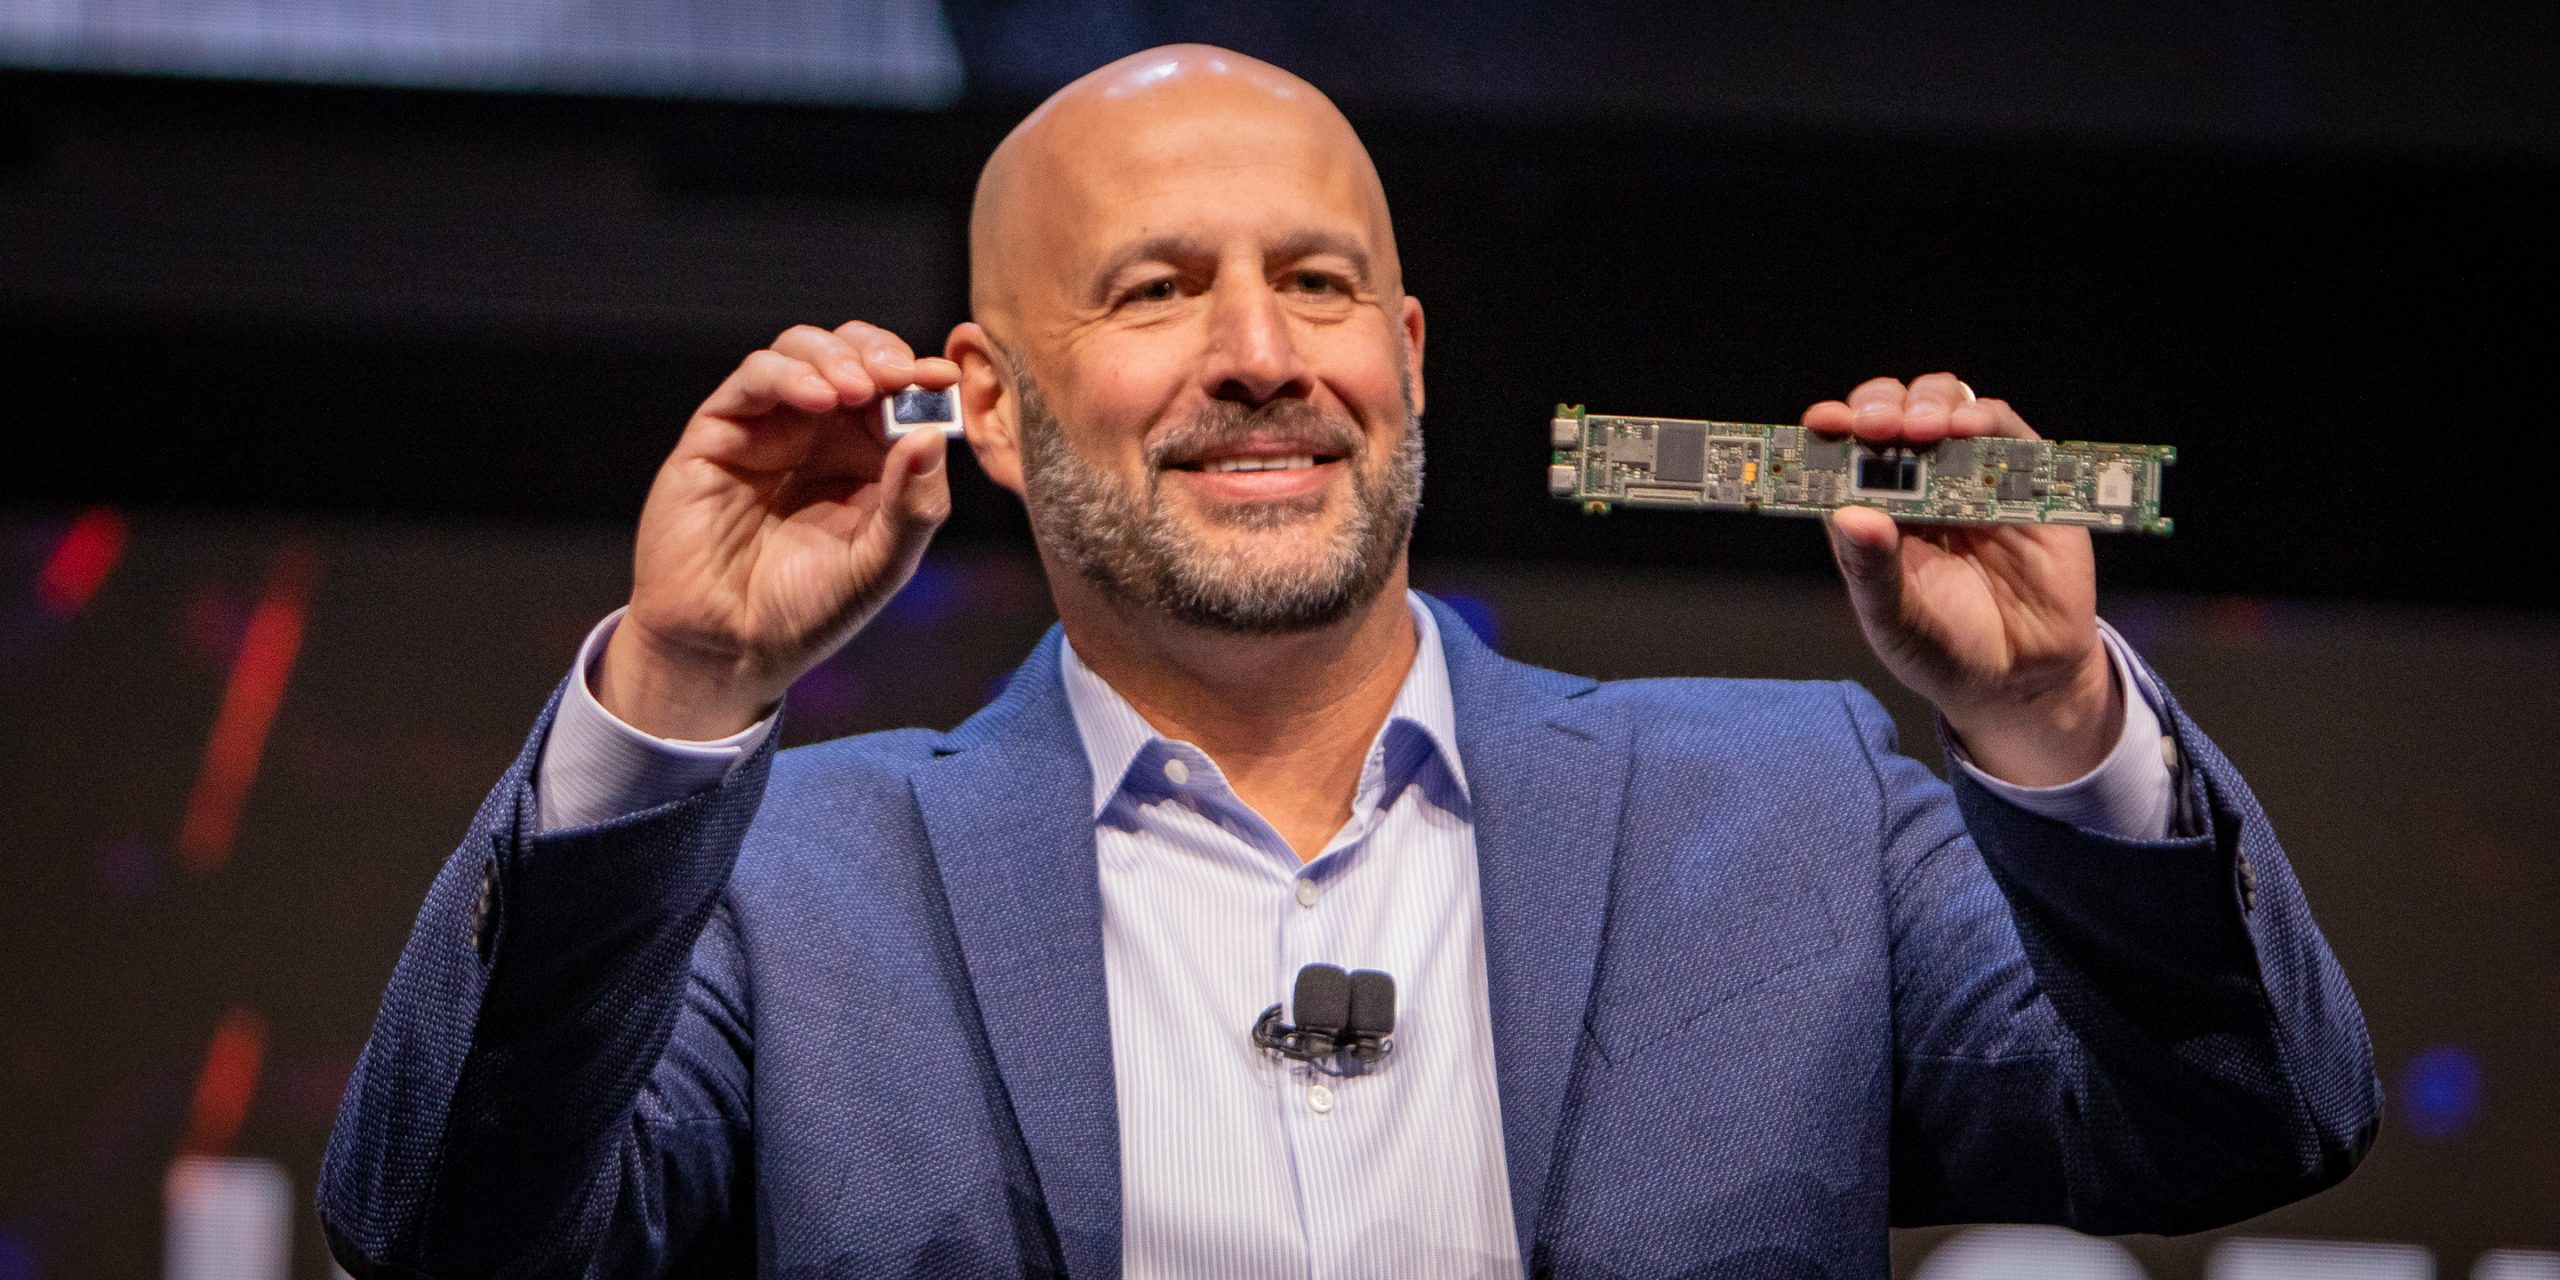 Intel Launches Two New Tiger Lake U-Series CPU & 5G Solution 5000 At Computex 2020 Event